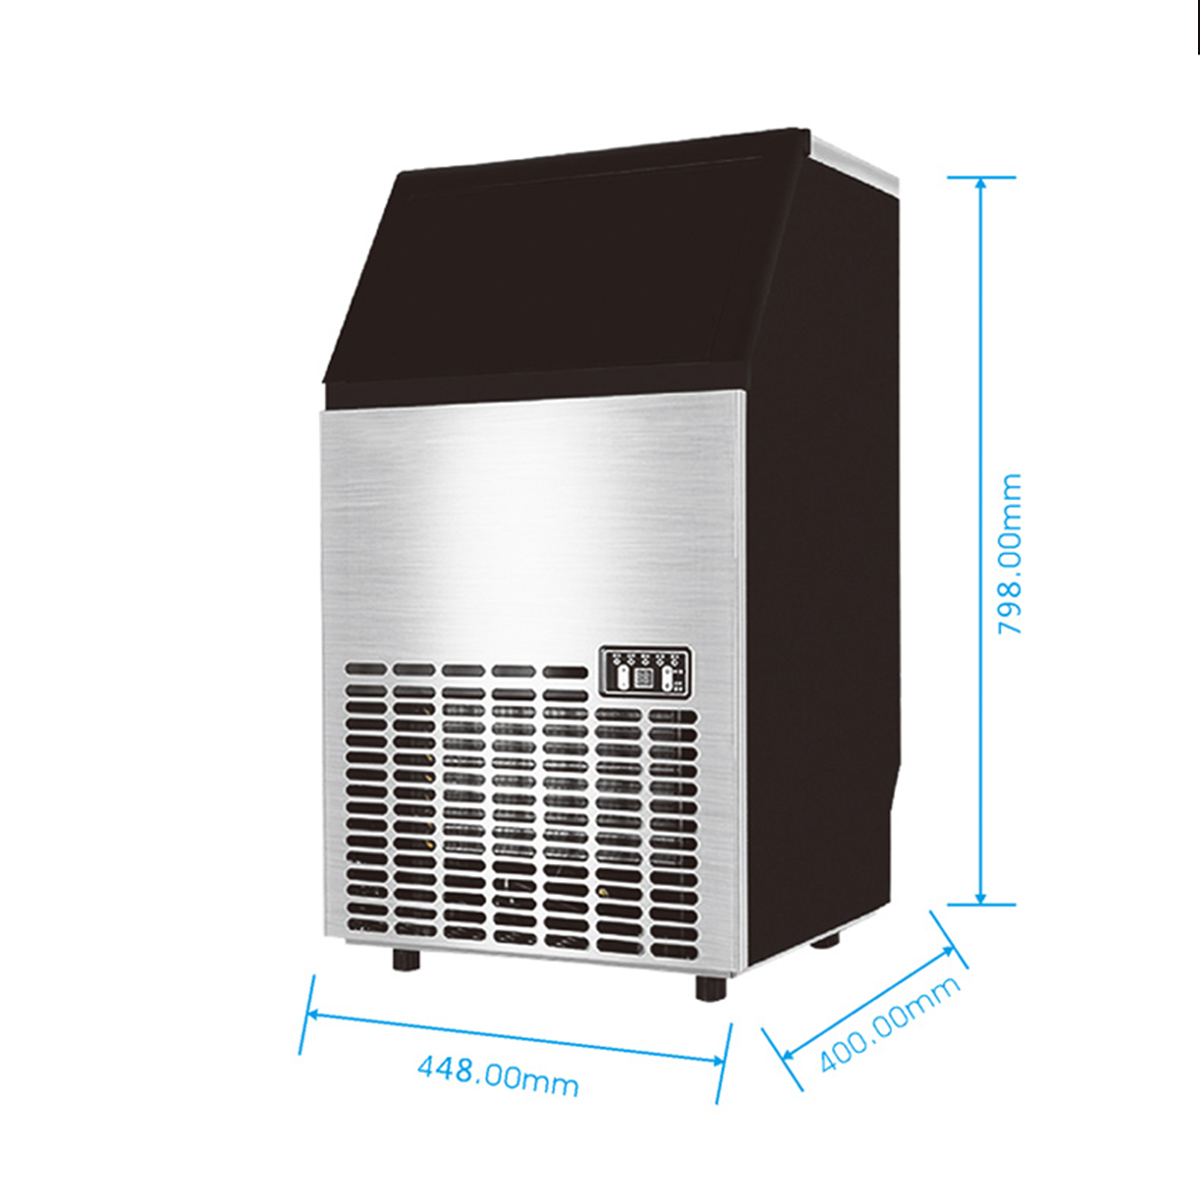 80kg/24hr Stainless Steel Commercial Ice Maker Ice Machine Icemaker Ice Making Tools Equipment